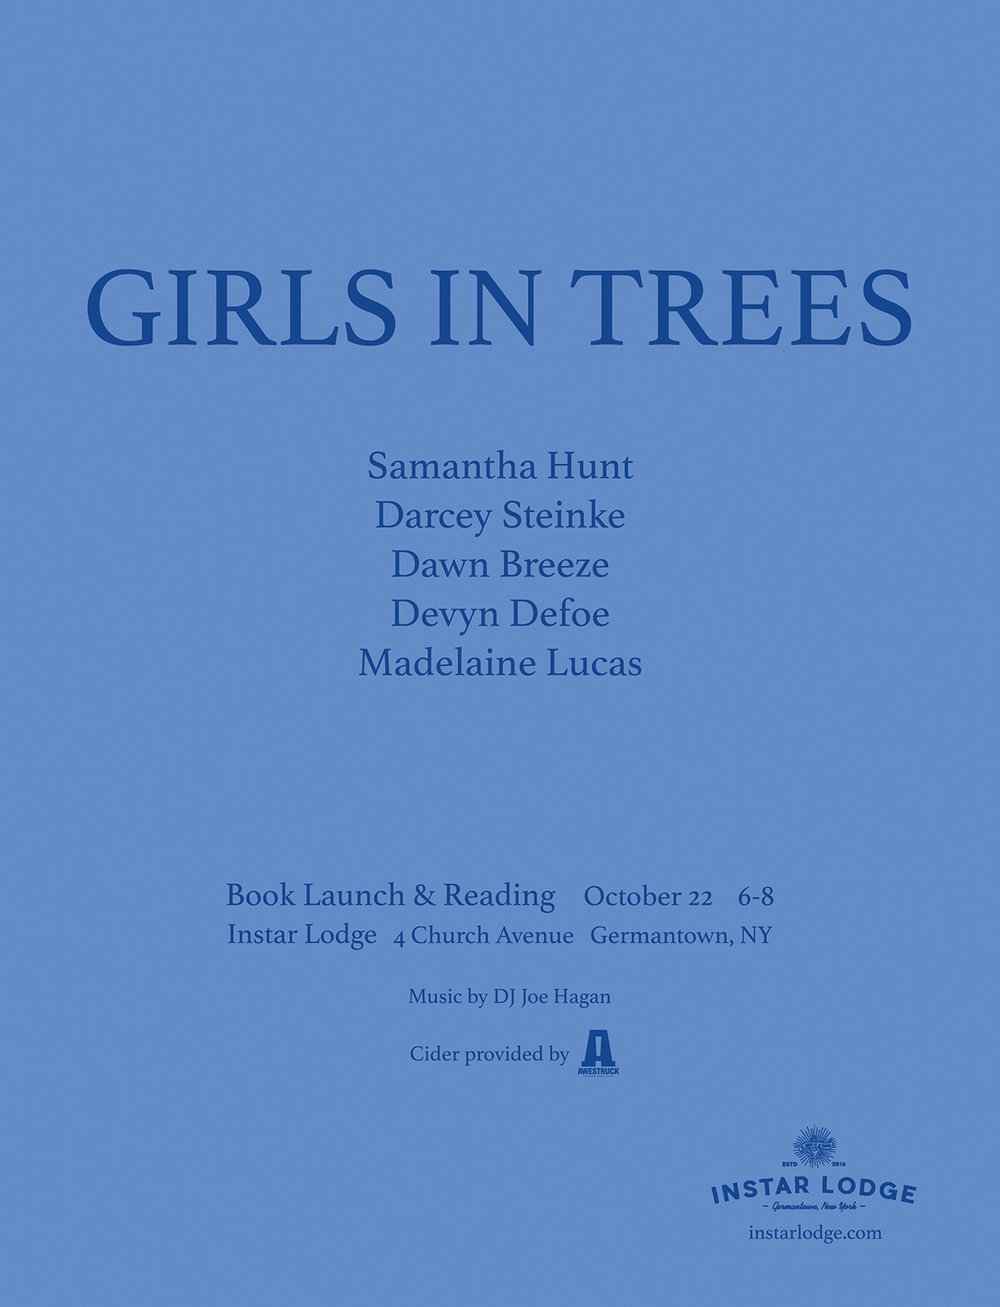 Join me at  Instar Lodge .  I will be reading a new short story titled, Giving Tree.  The event is going to be a wonderful party in celebration of launching this beautiful limited edition artist book edited by Rebecca Godfrey and featuring works from over 33 artists.